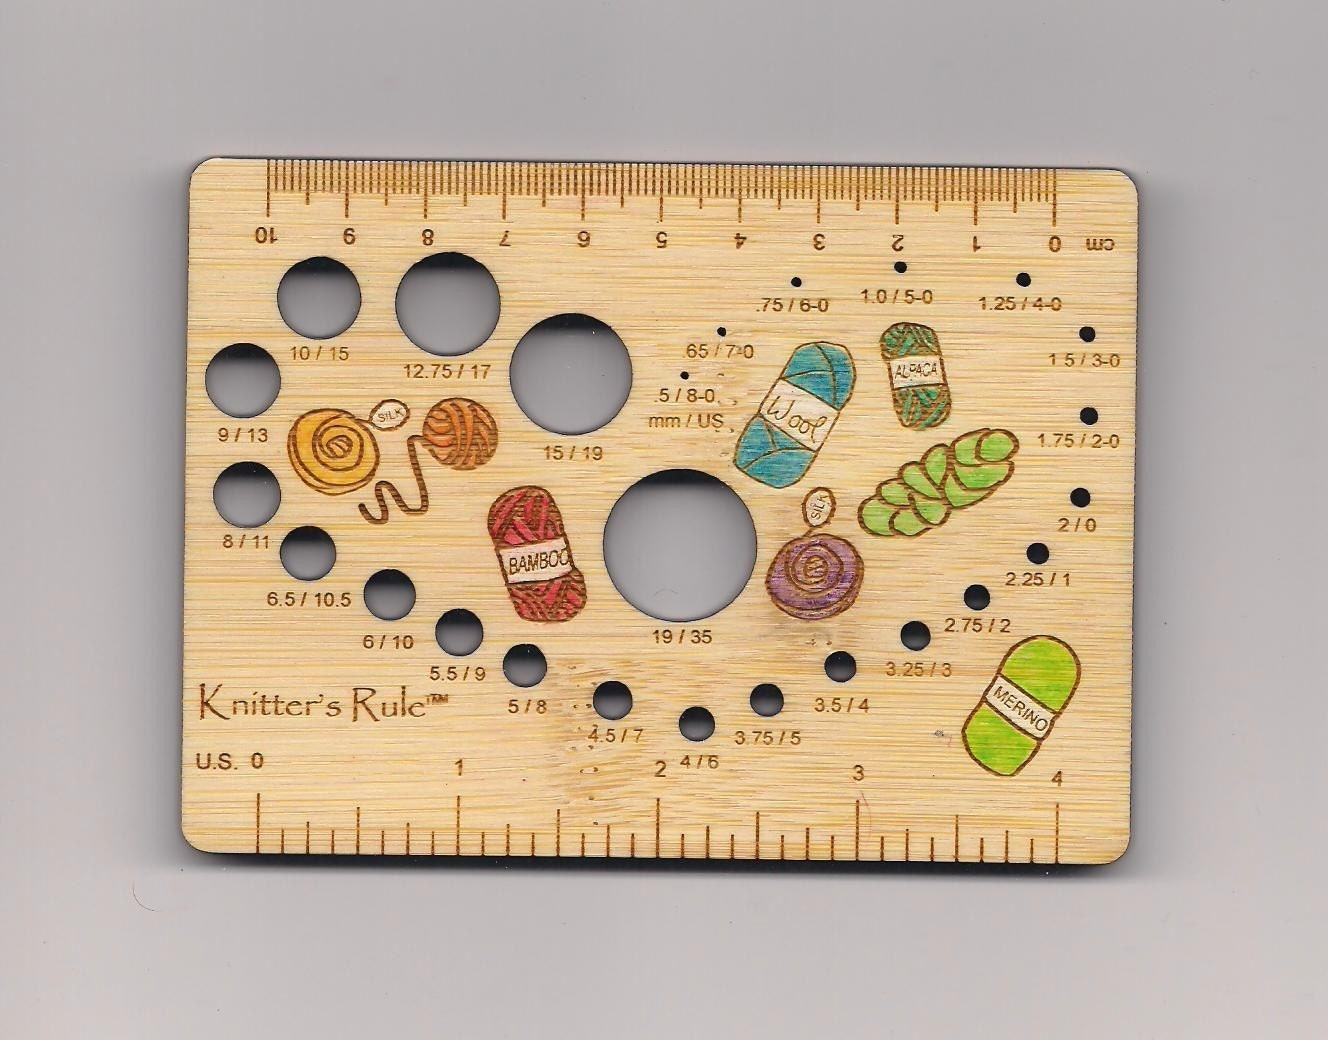 Knitting Needle Stitch Gauge : Yarn Stash Knitters Rule Needle Gauge